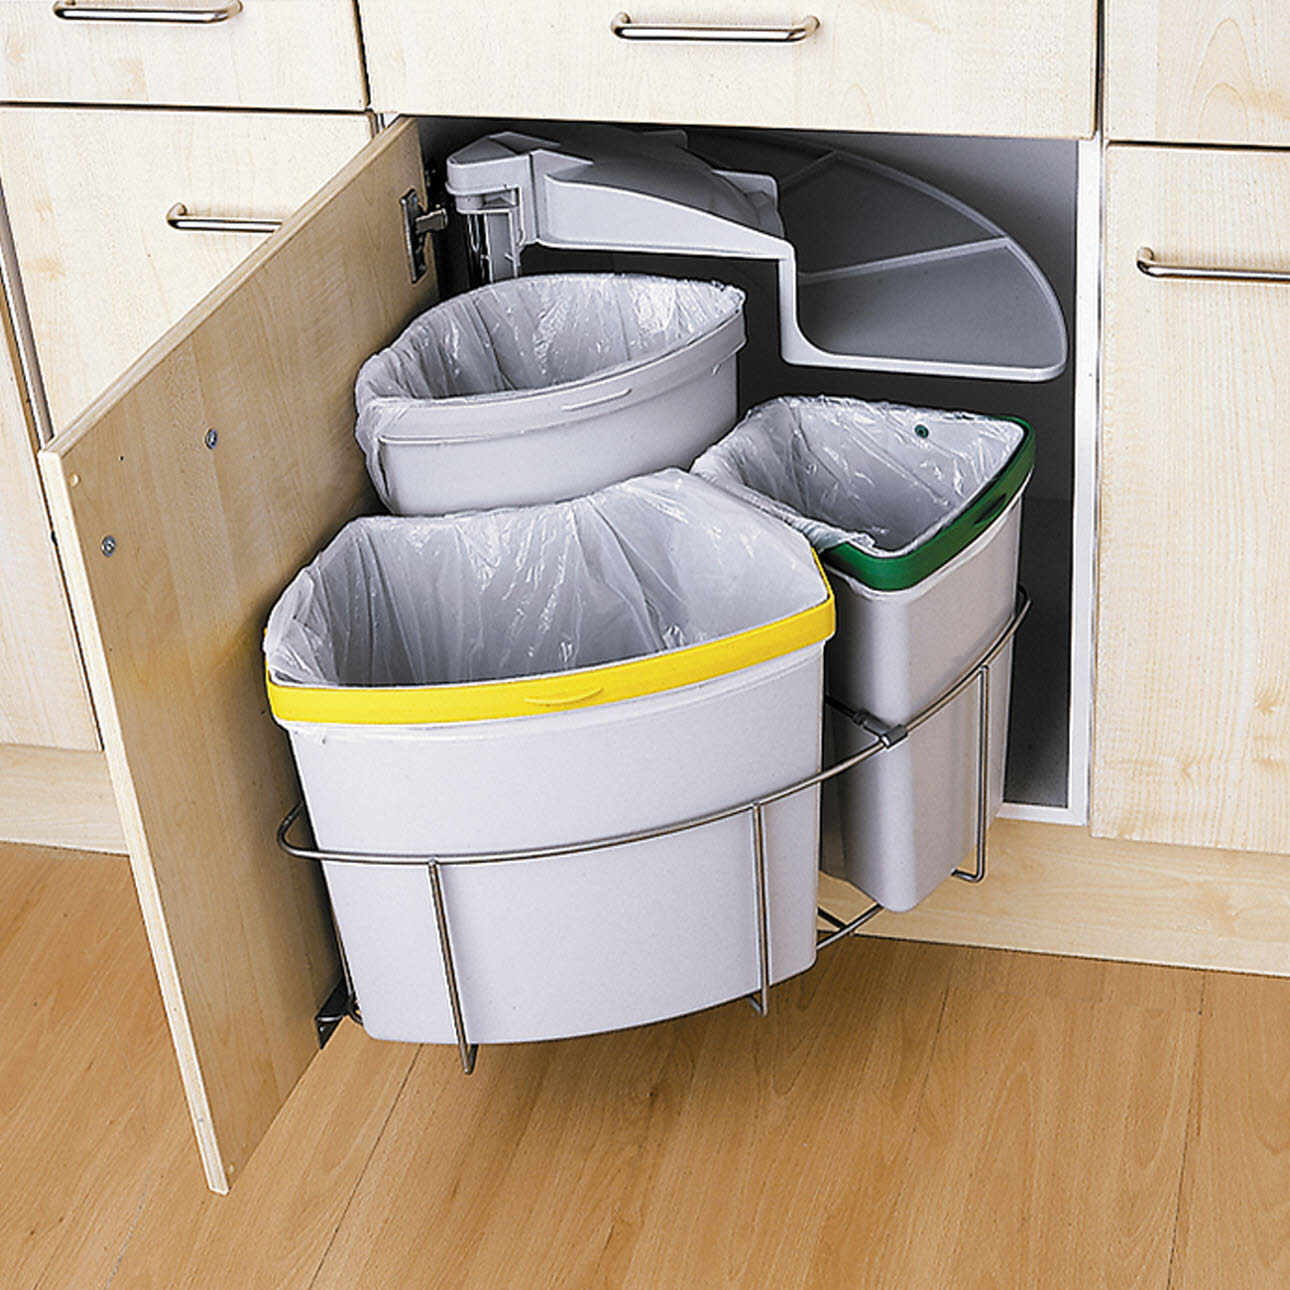 Magnet three part recycling bin